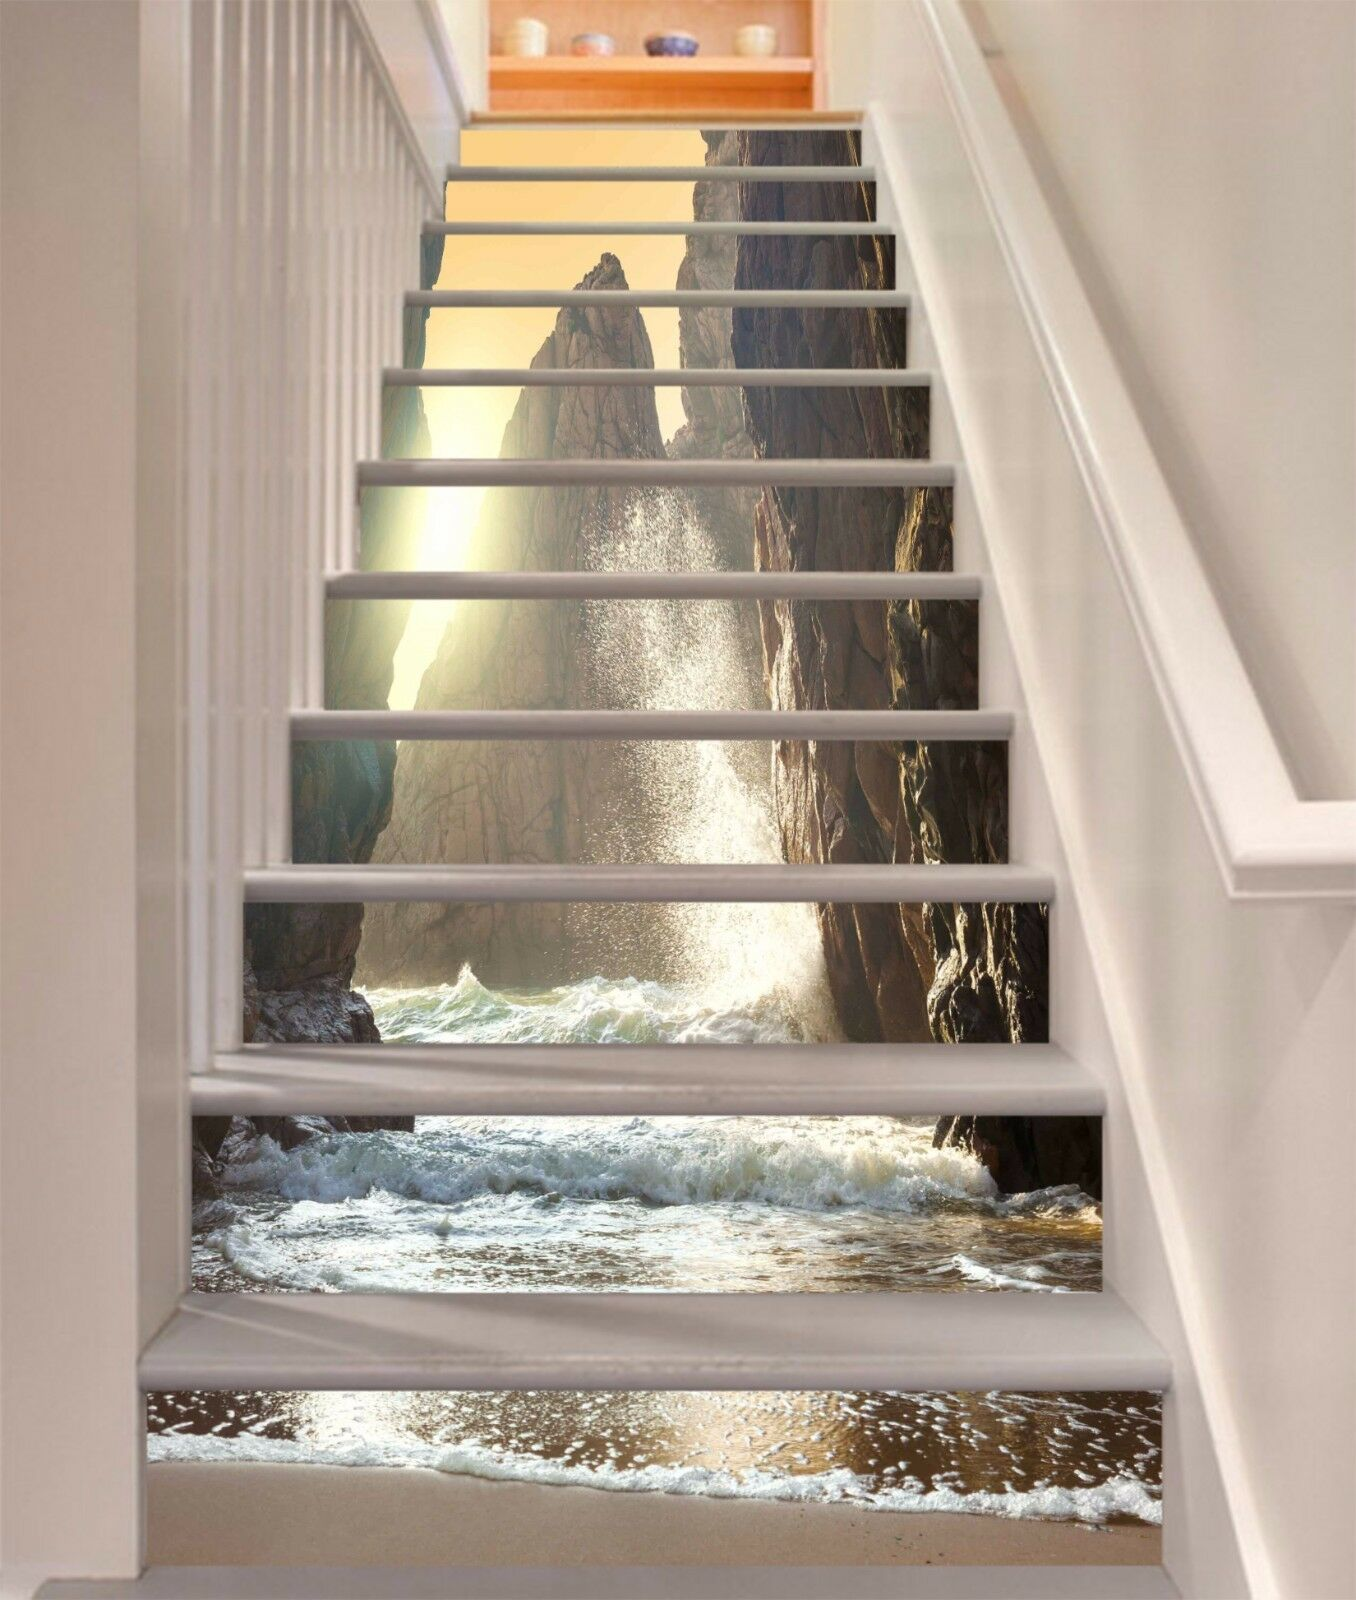 3D Sea Tower Hills Stair Risers Decoration Photo Mural Vinyl Decal Wallpaper UK